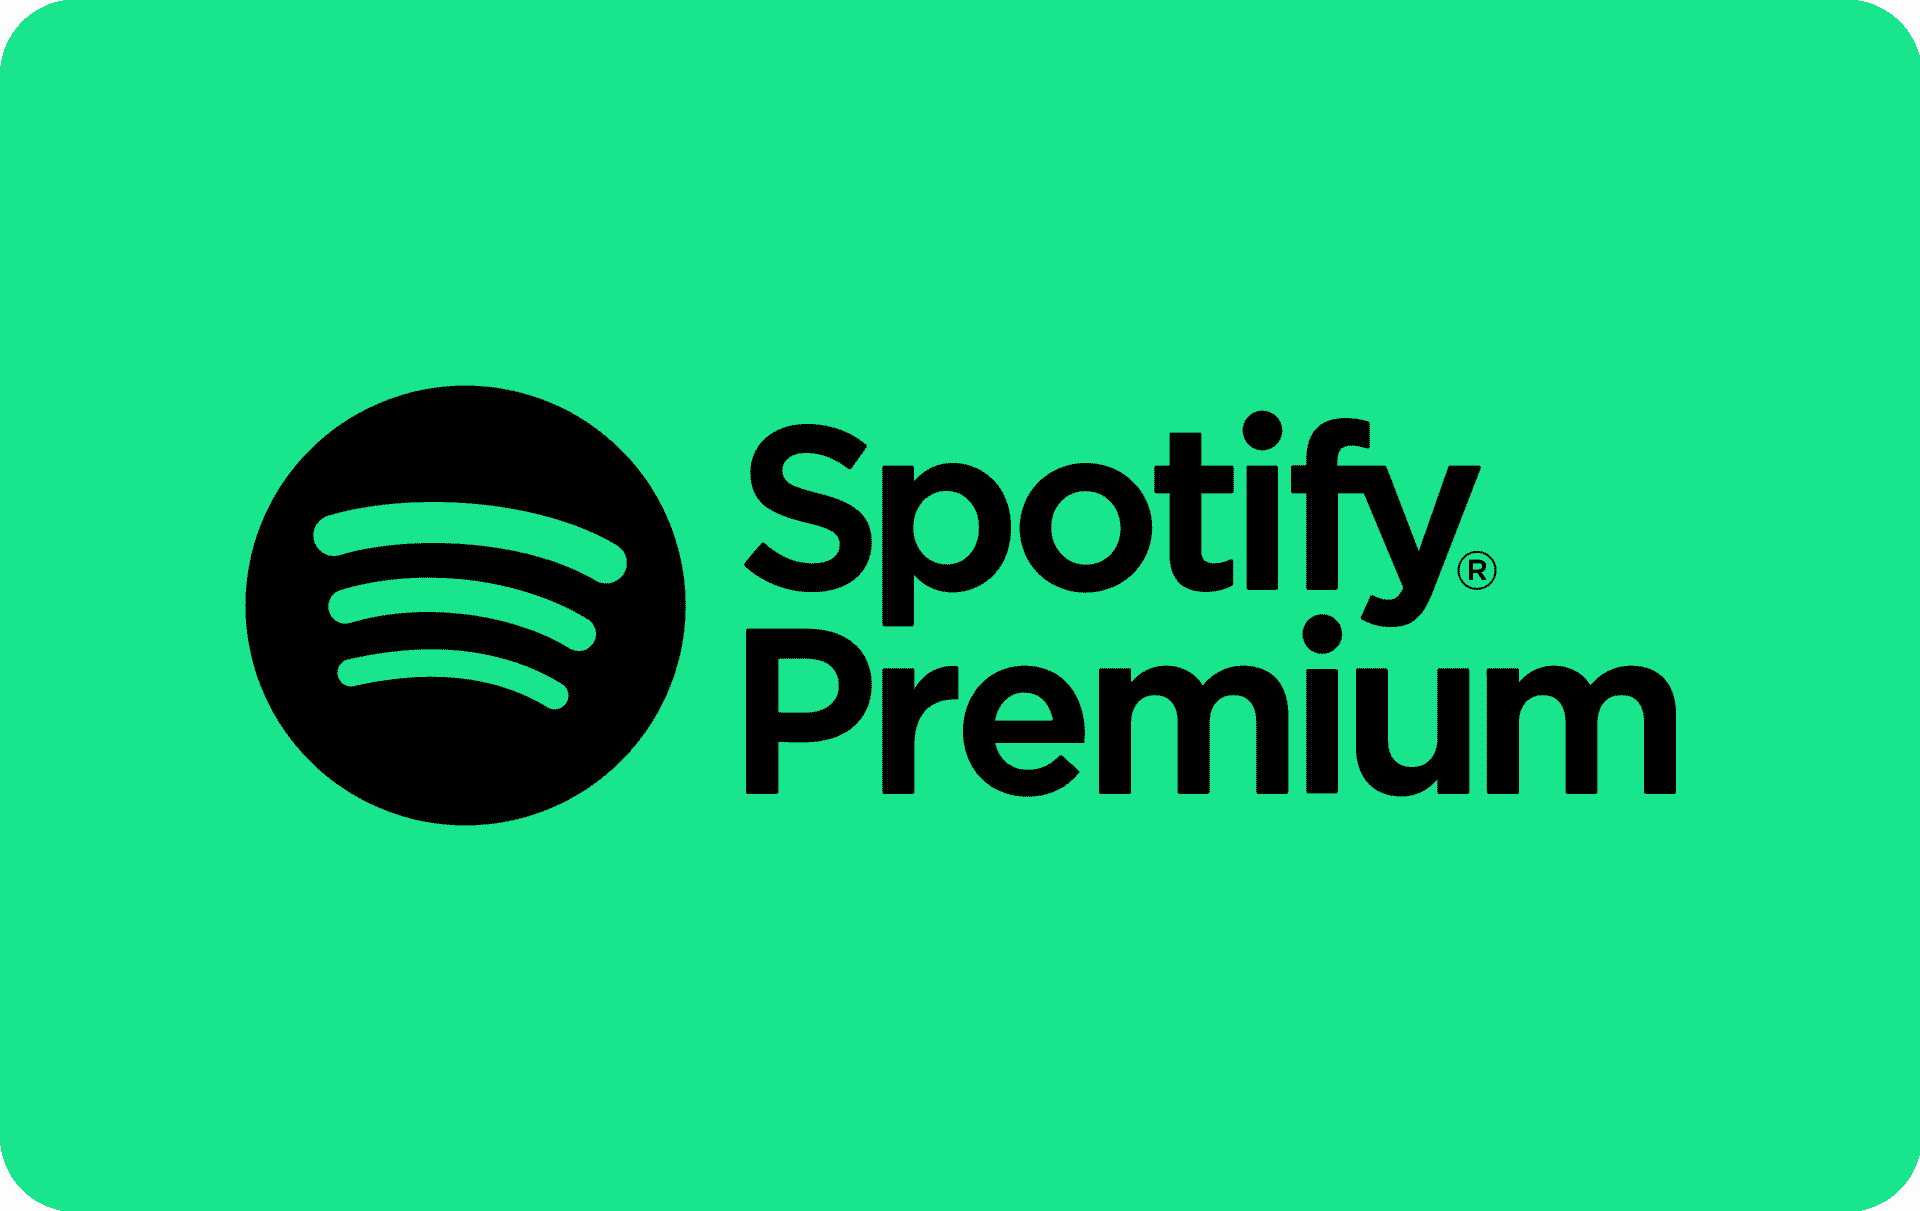 What is Spotify Premium 6 Month Offer